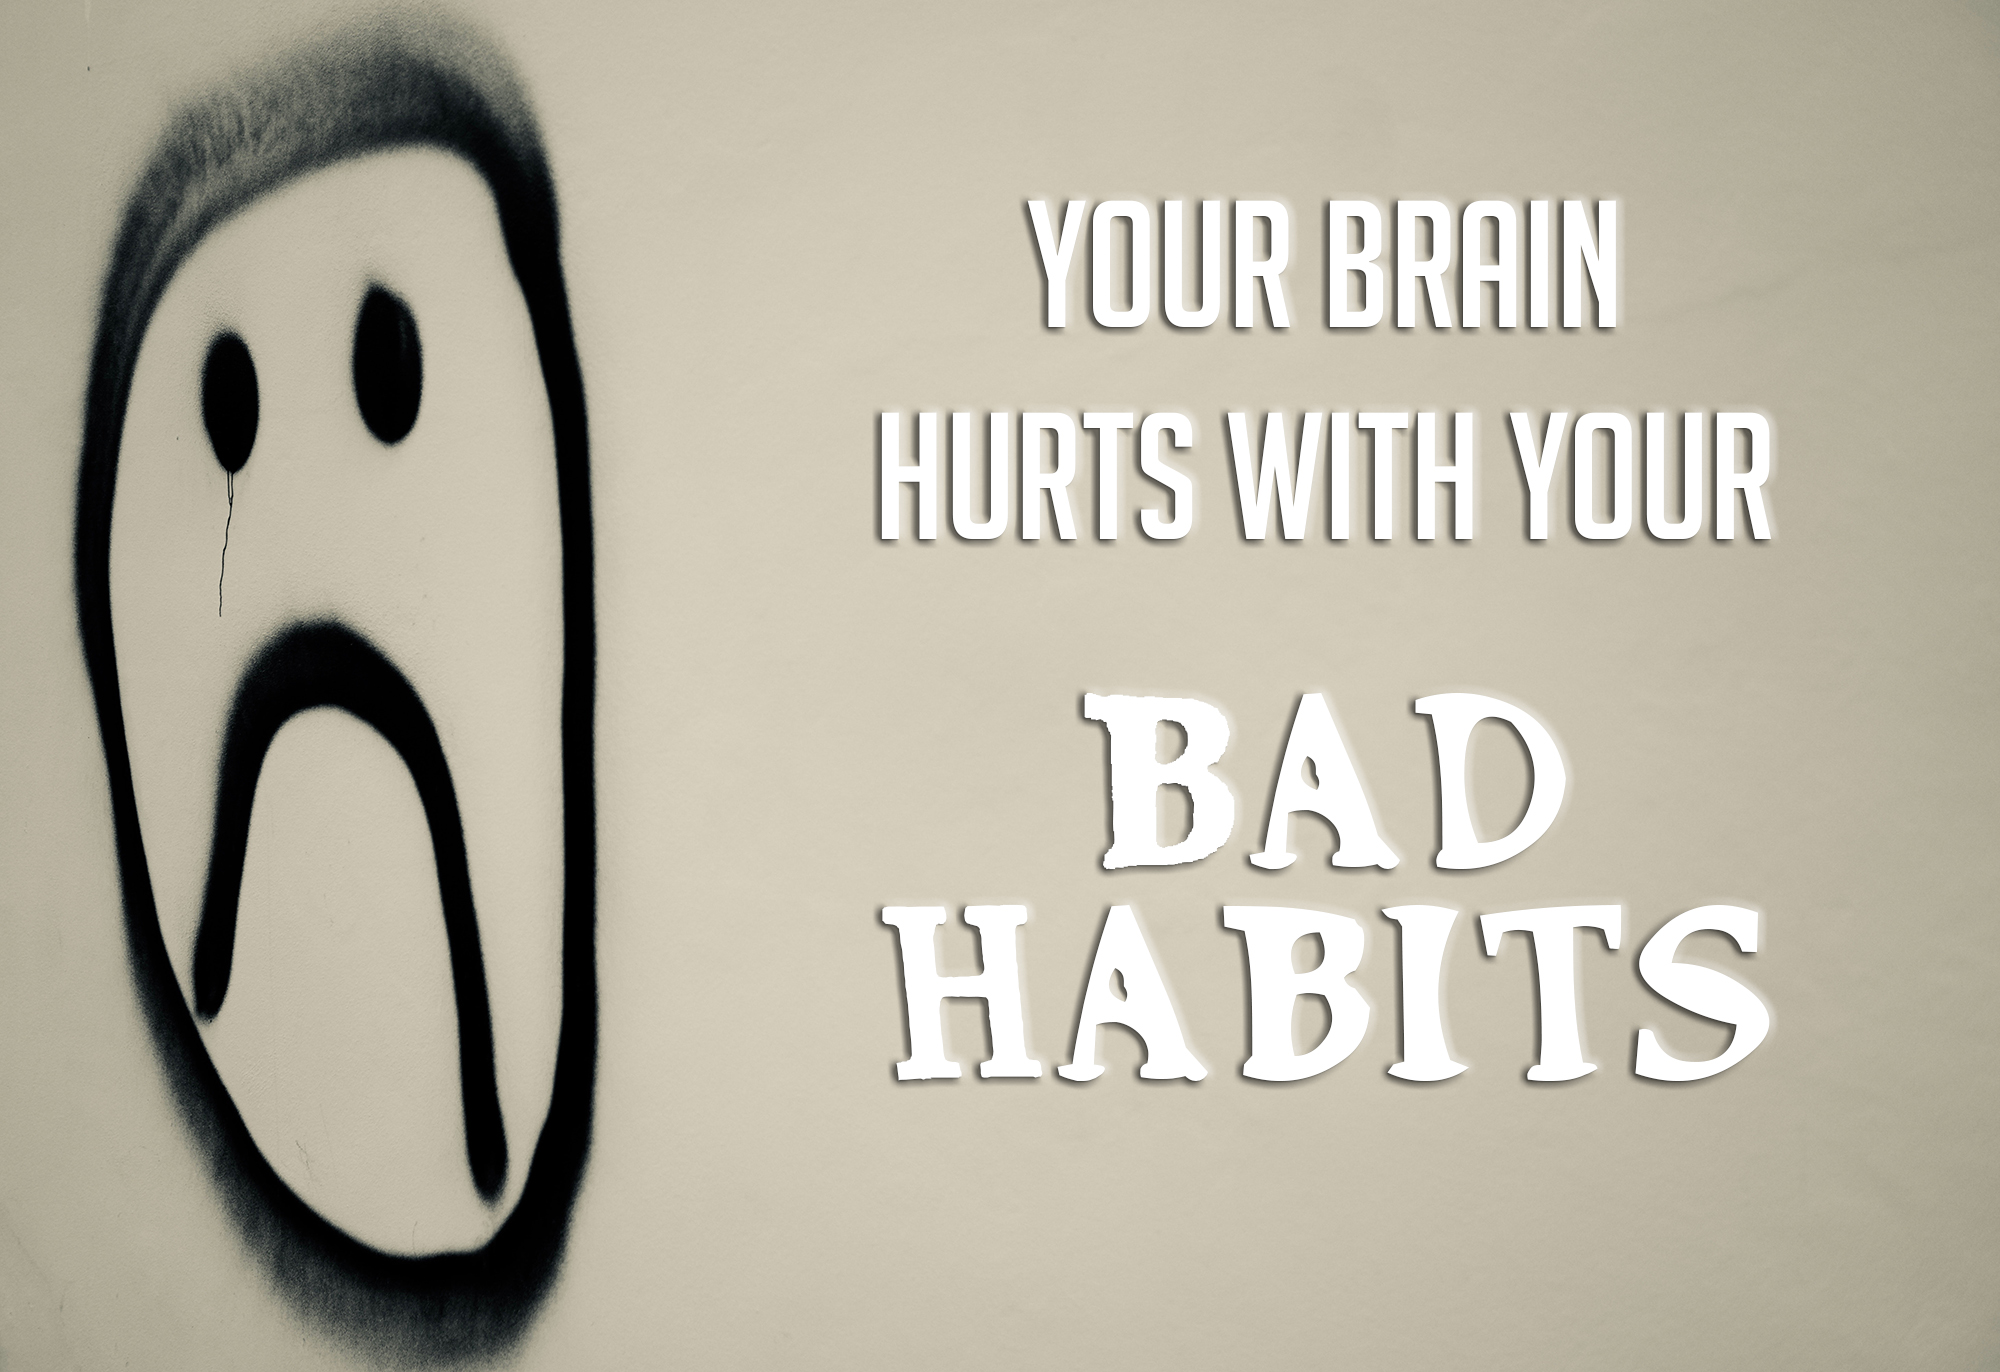 Your Brain Hurts with Your Bad Habits, FYI About Brain Health